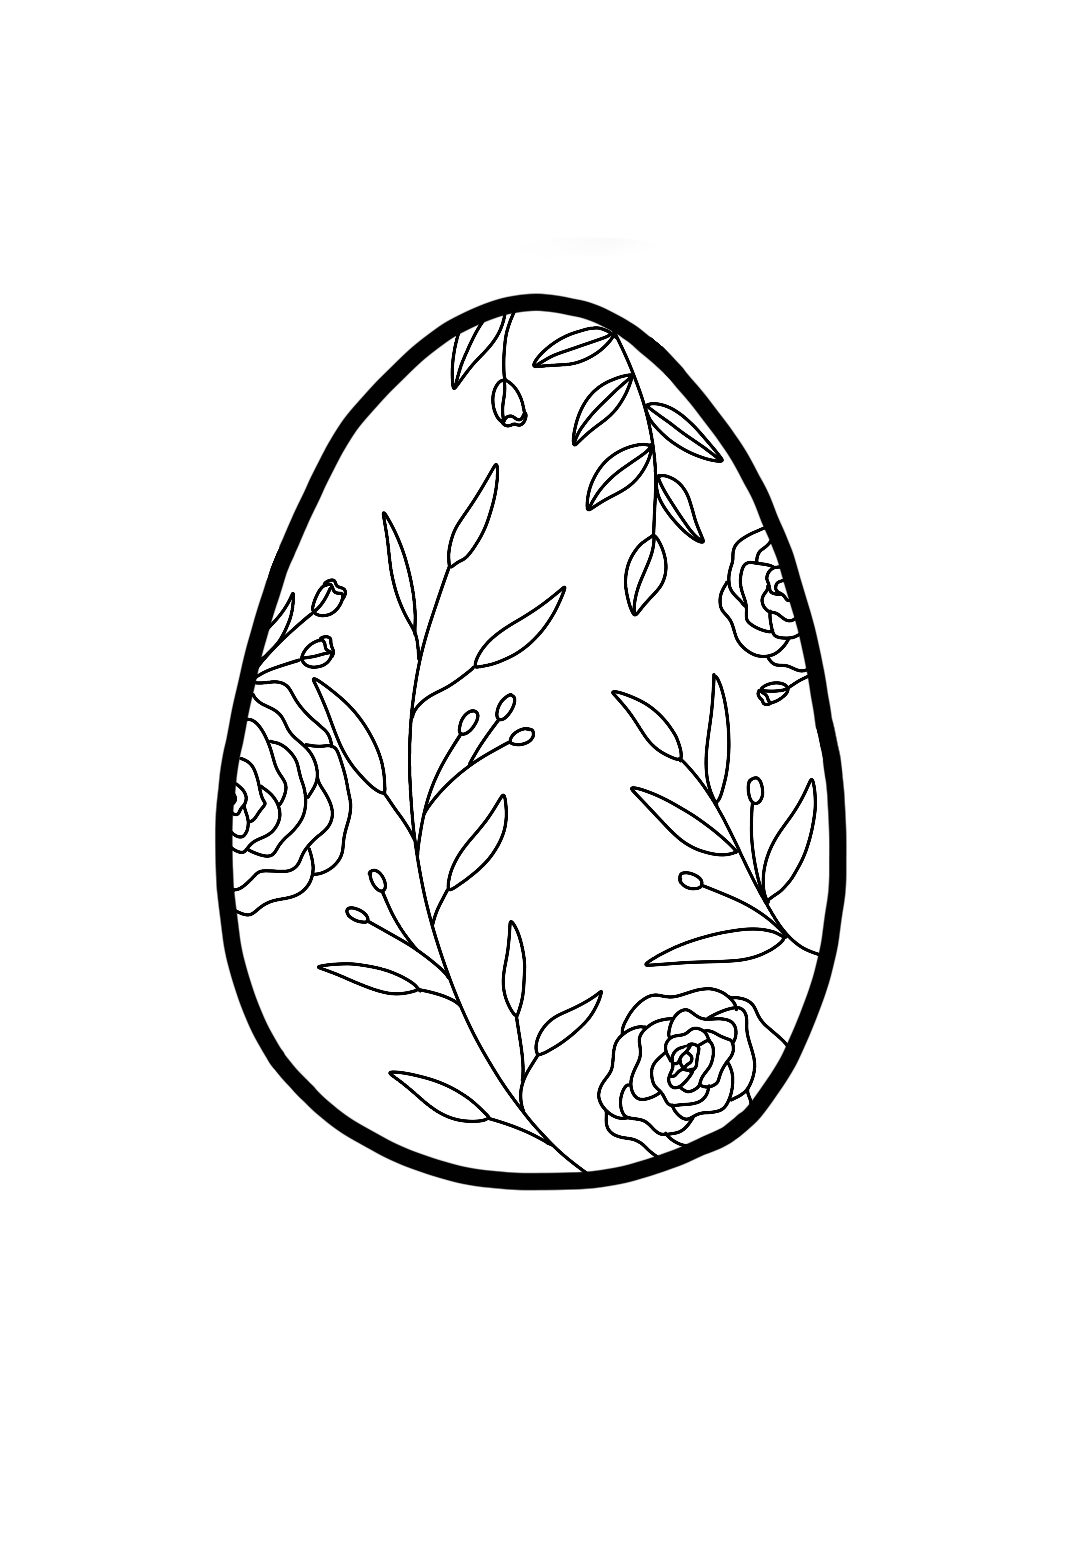 Free Stuff In 2020 Colouring Pages Free Coloring Pages Bunny Coloring Pages